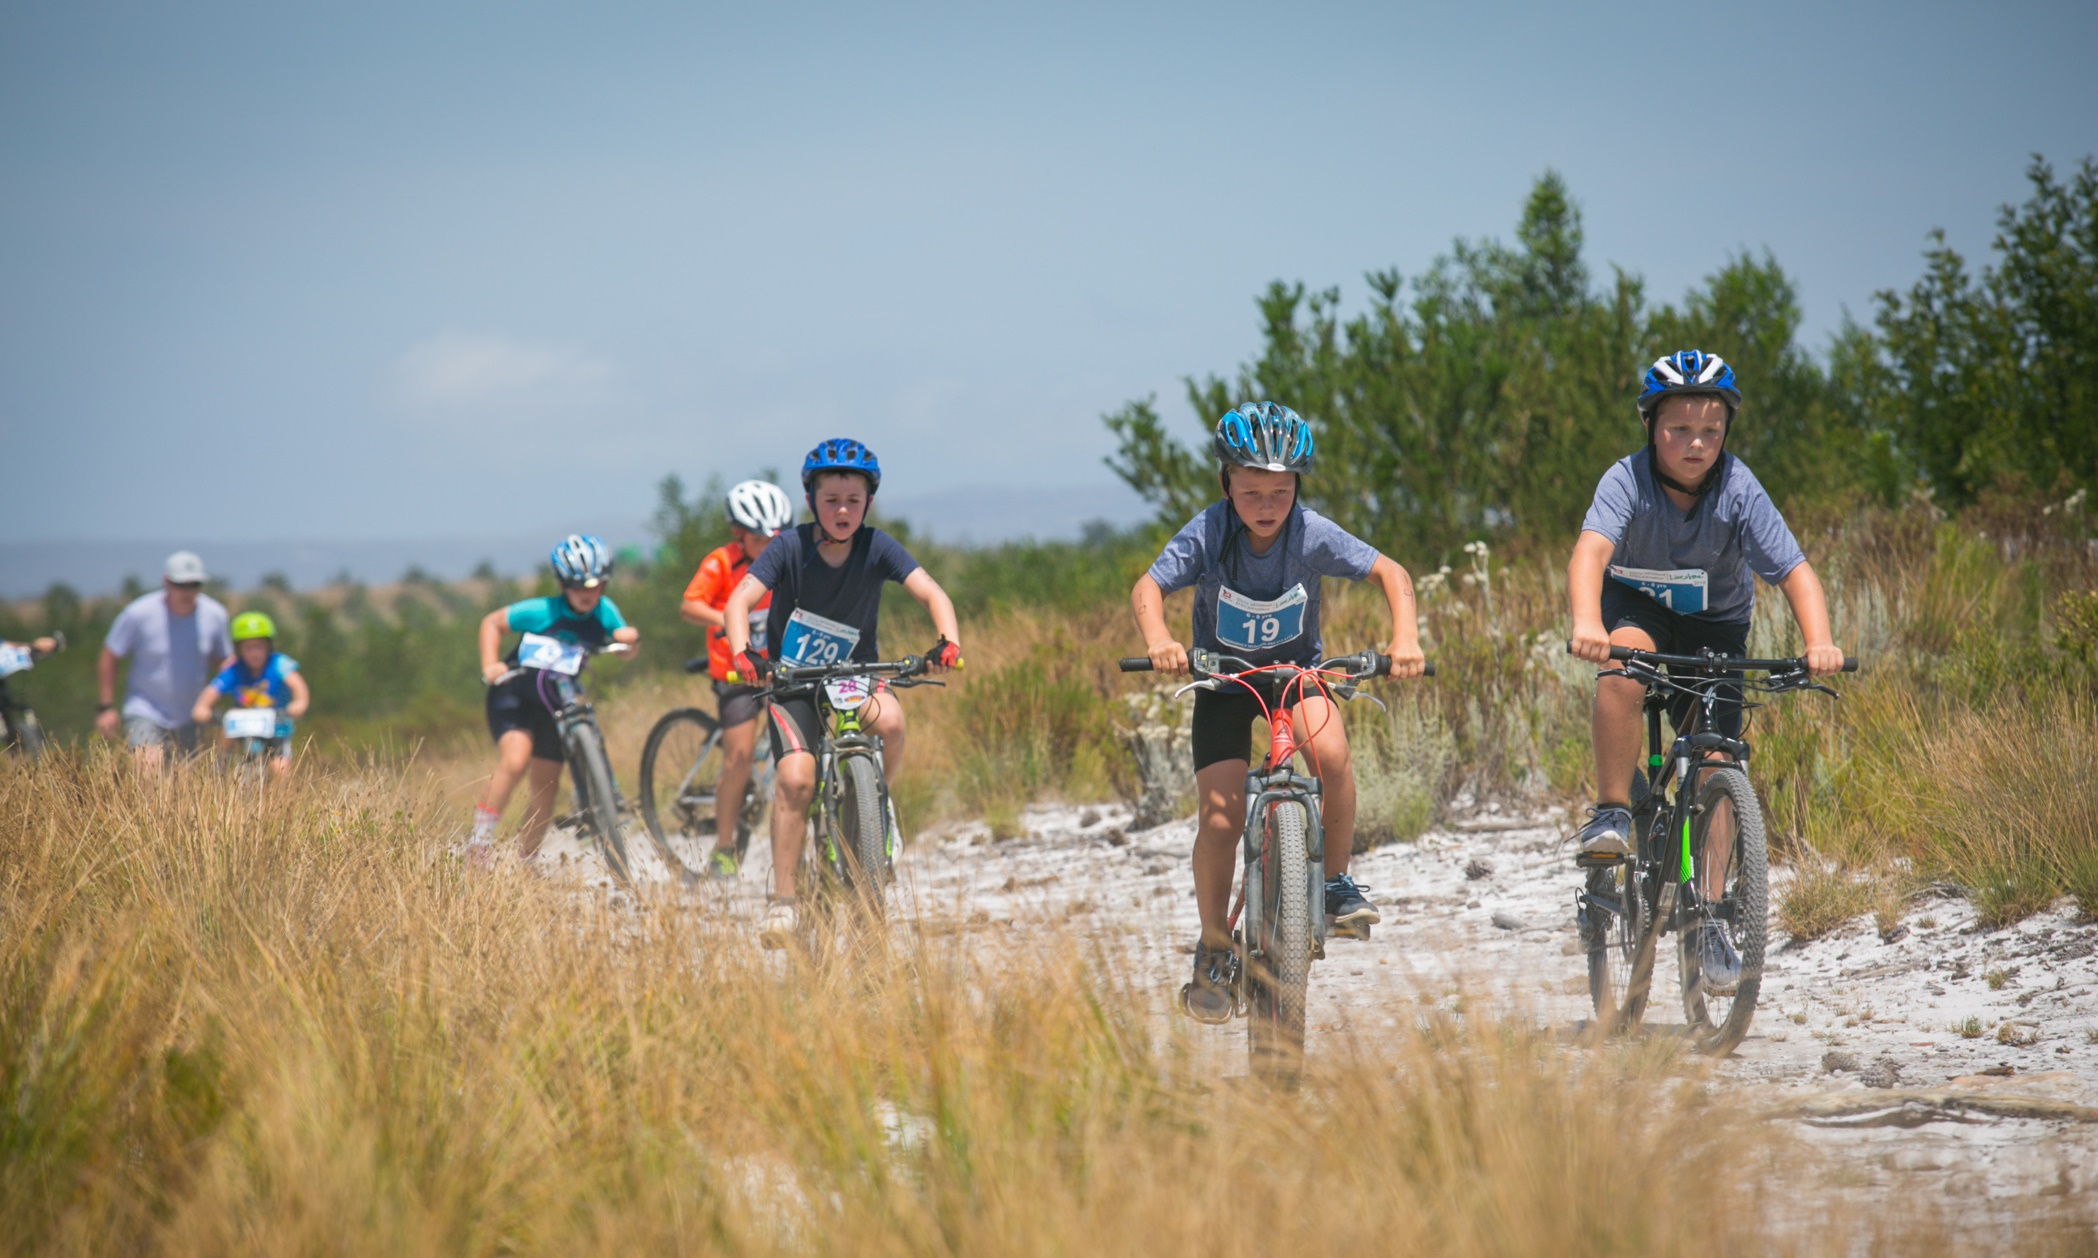 Junior adventure seekers in the limelight at XTERRA Kids Race